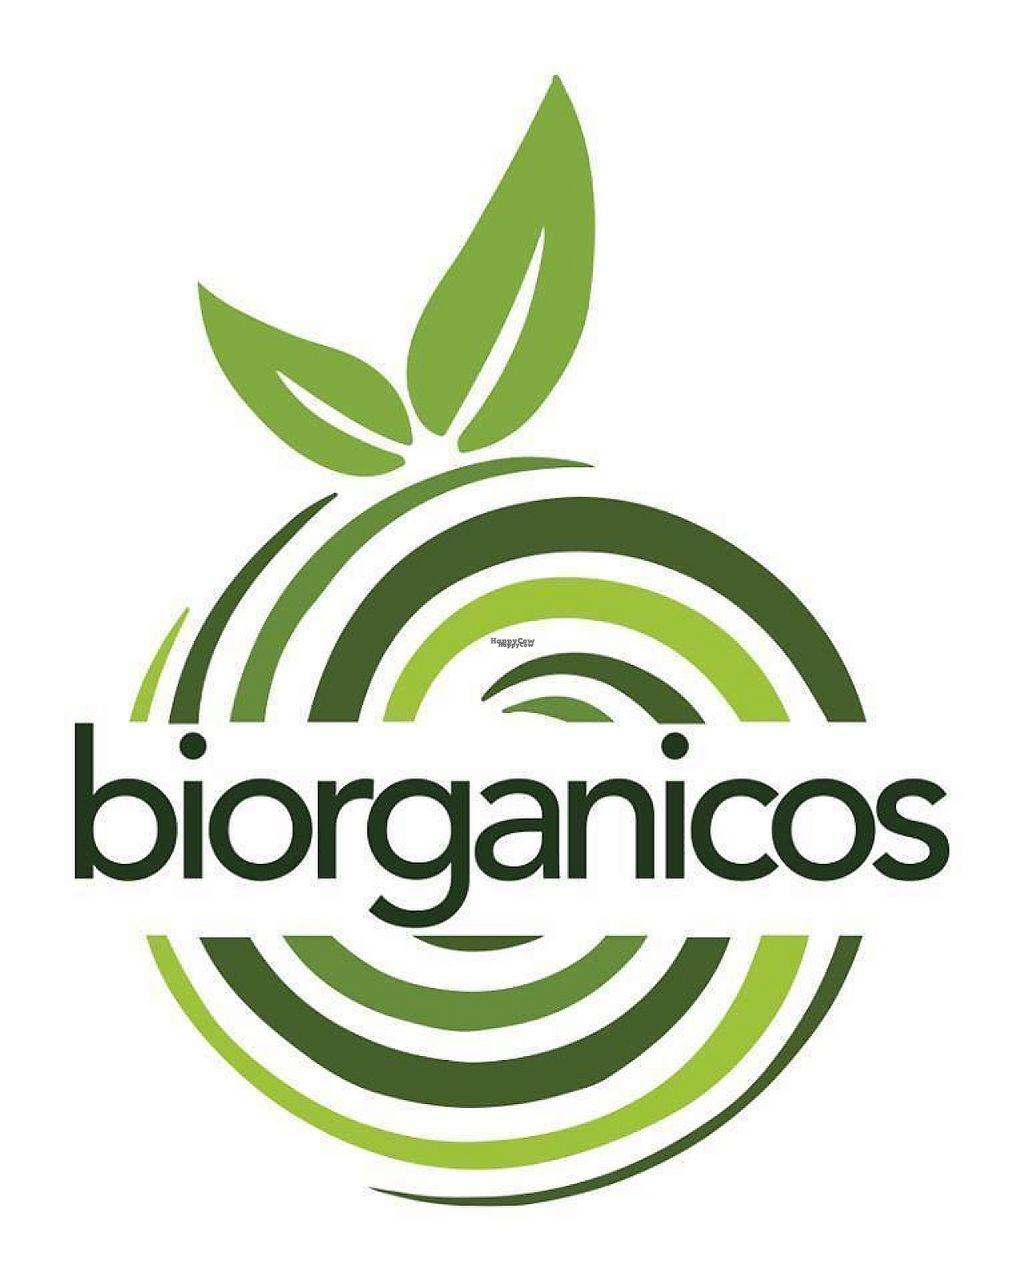 """Photo of Biorganicos  by <a href=""""/members/profile/community"""">community</a> <br/>Biorganicos <br/> February 21, 2017  - <a href='/contact/abuse/image/62593/228824'>Report</a>"""